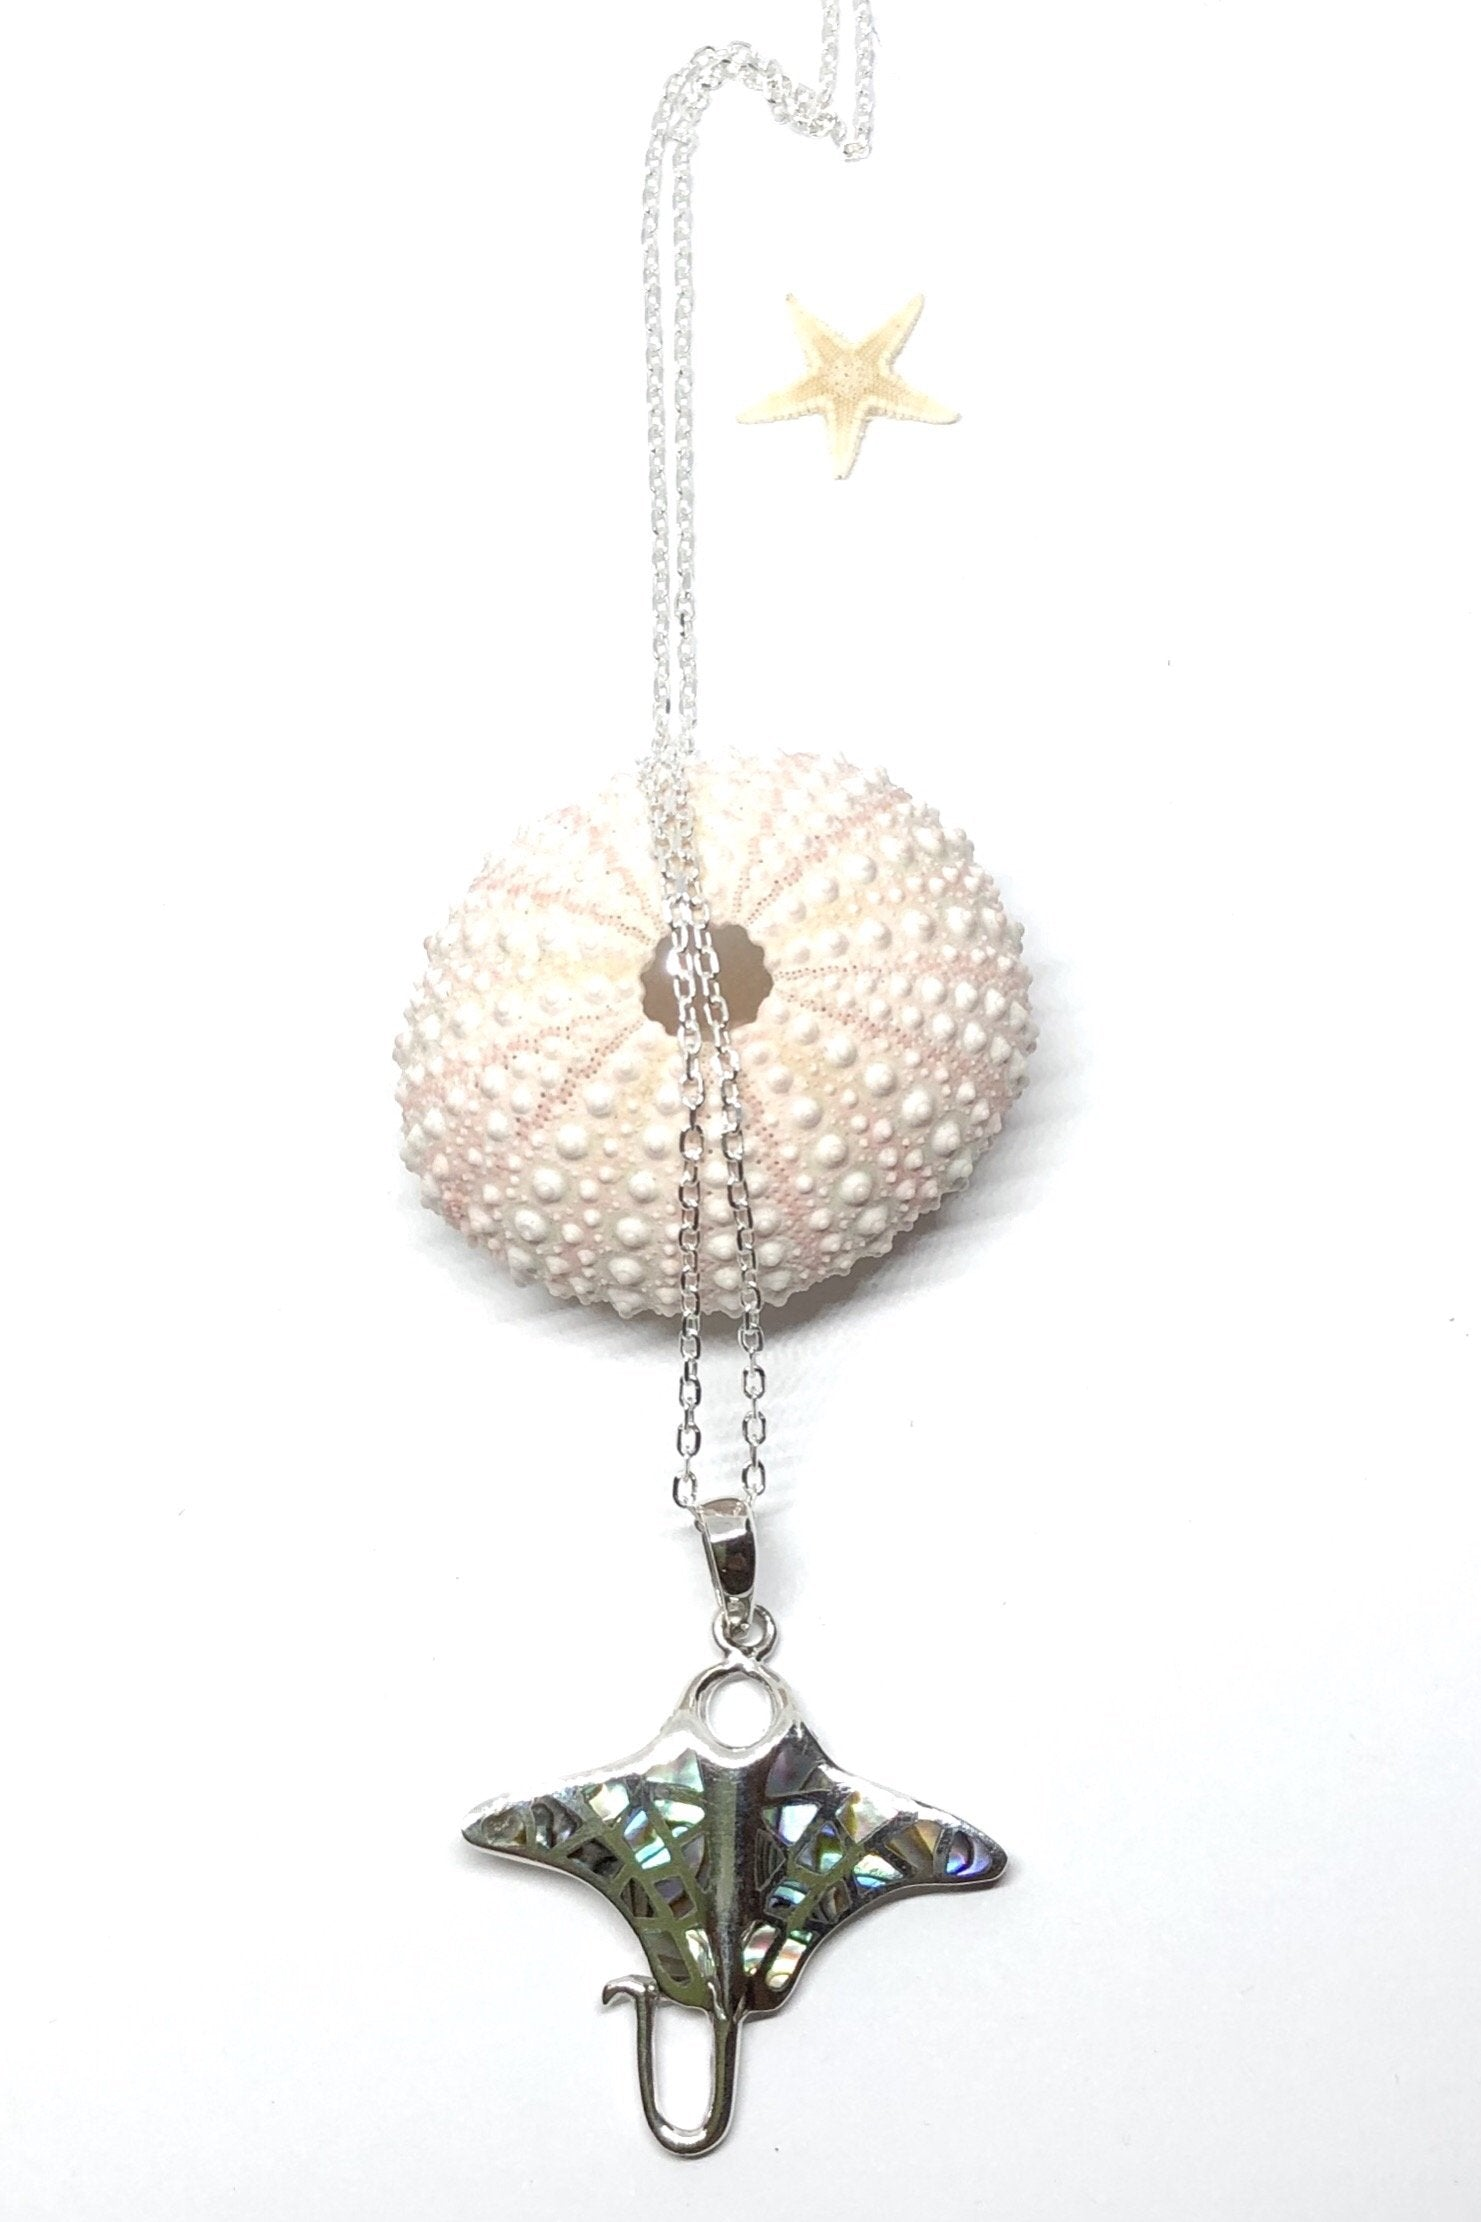 Necklace Cay Manta Ray with paua shell. A perfect pendant so beautifully inlaid with the spots of Paua shell on its wings